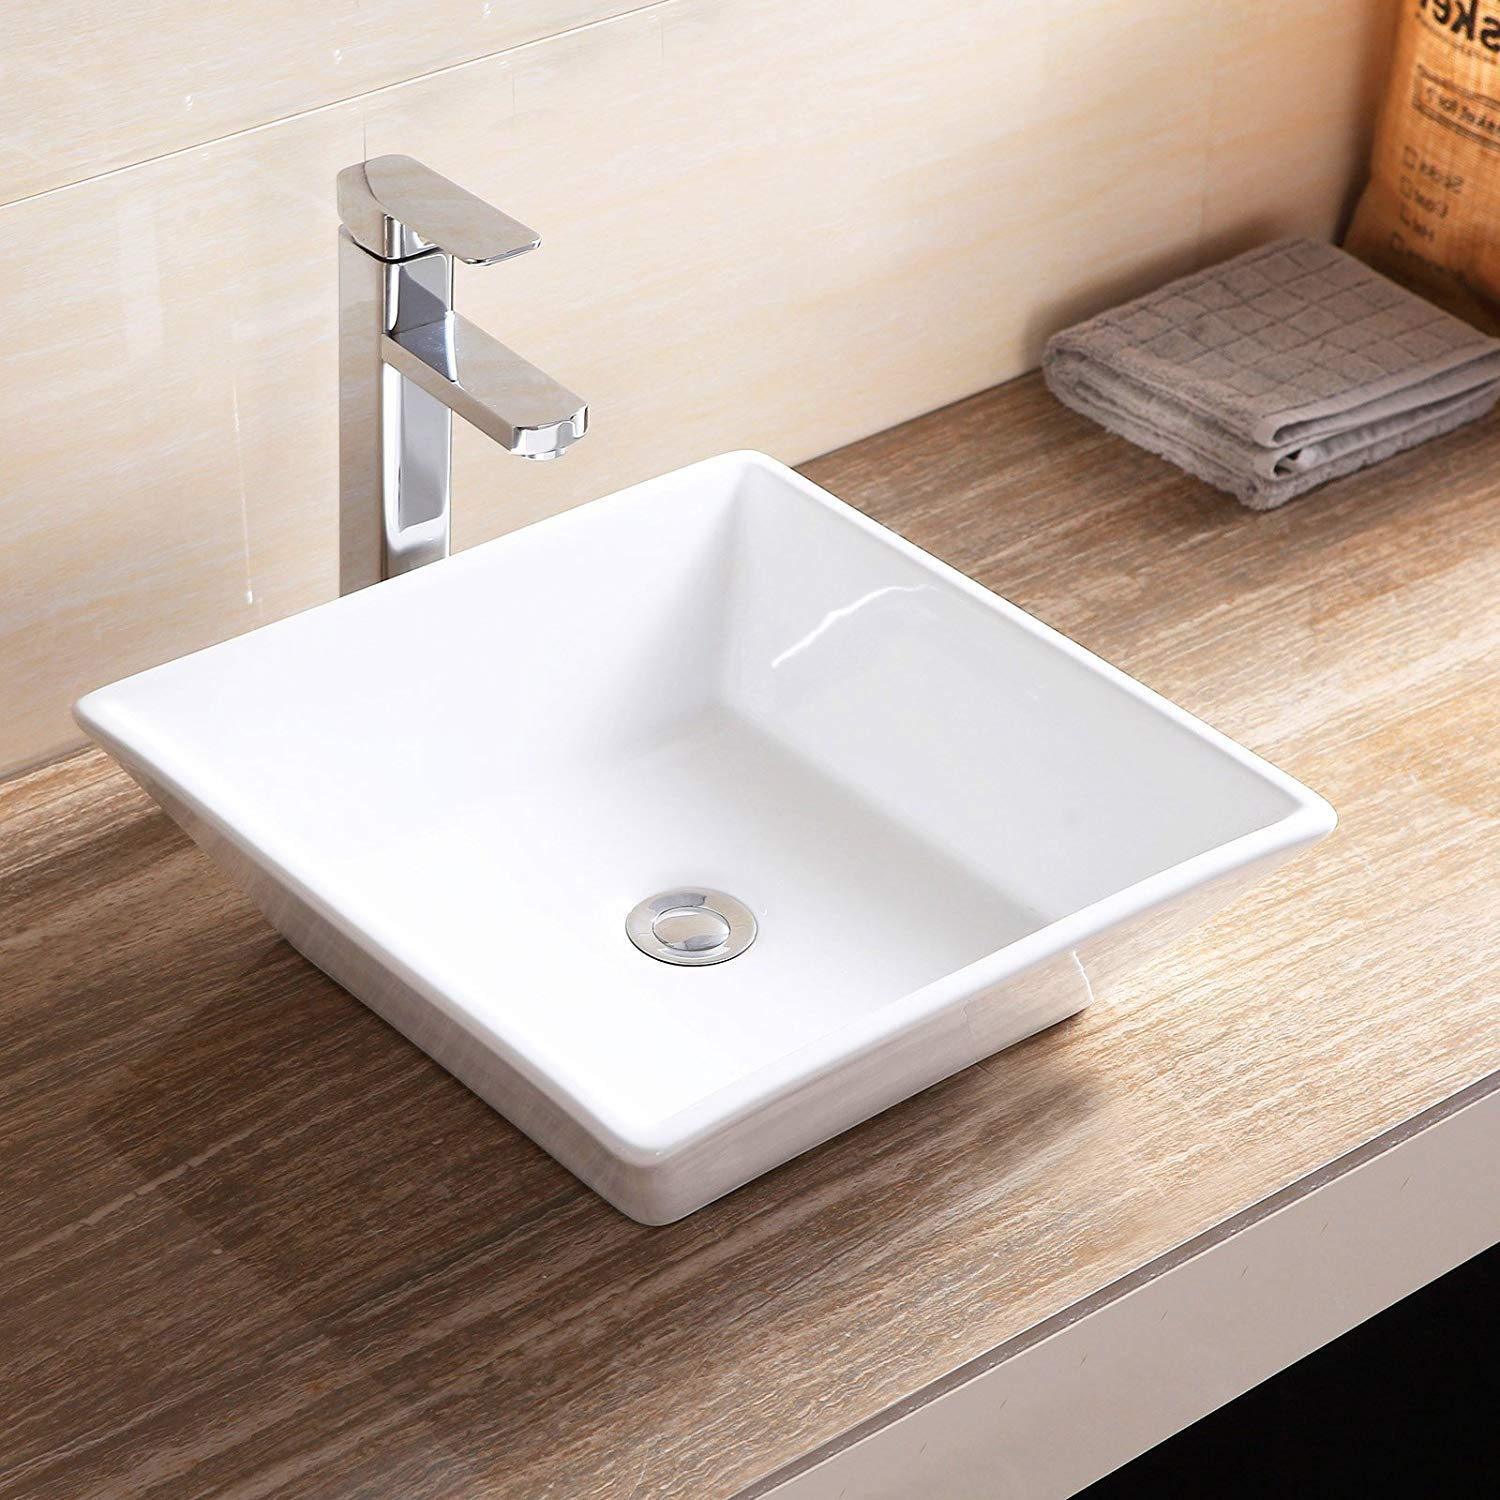 Mecor 16 X 16 Beveled Square White Porcelain Ceramic Basin Vessel Vanity Sink Bowl Bathroom With Pop Up Drain